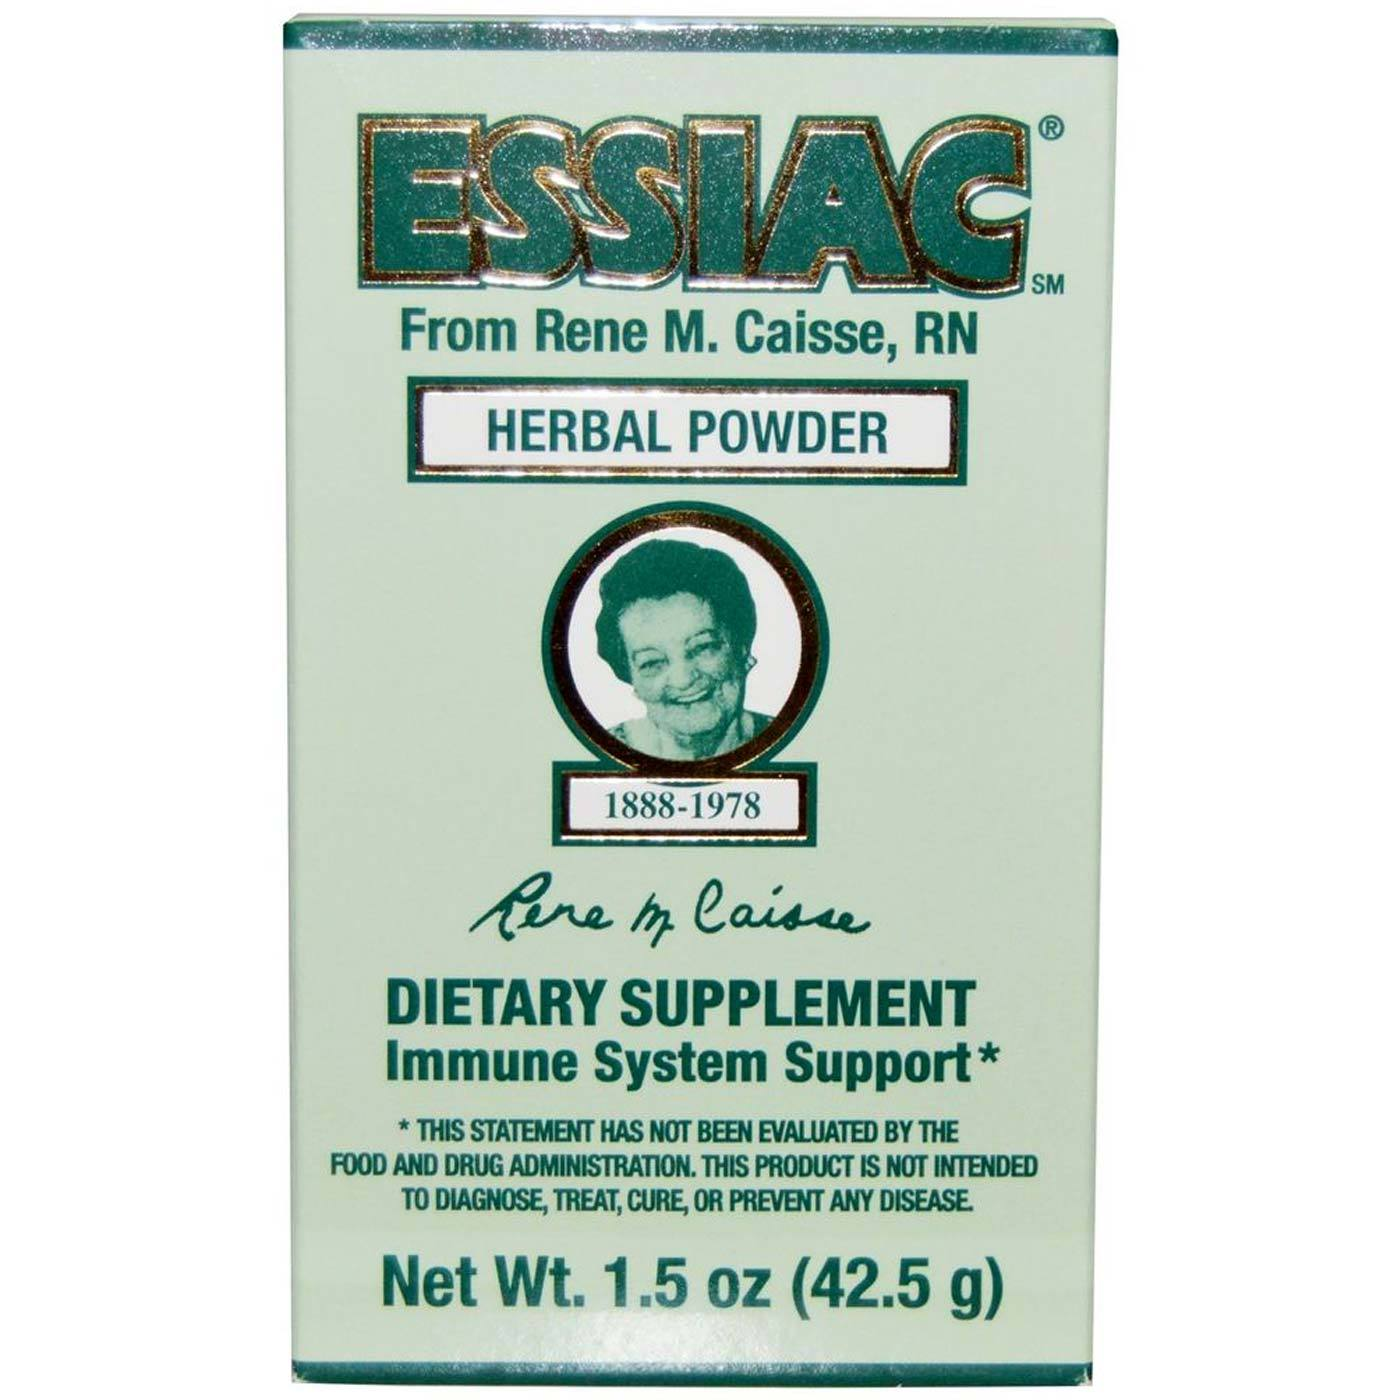 Cancer cure essiac herbal tea - View Image View Image Essiac Herbal Tea